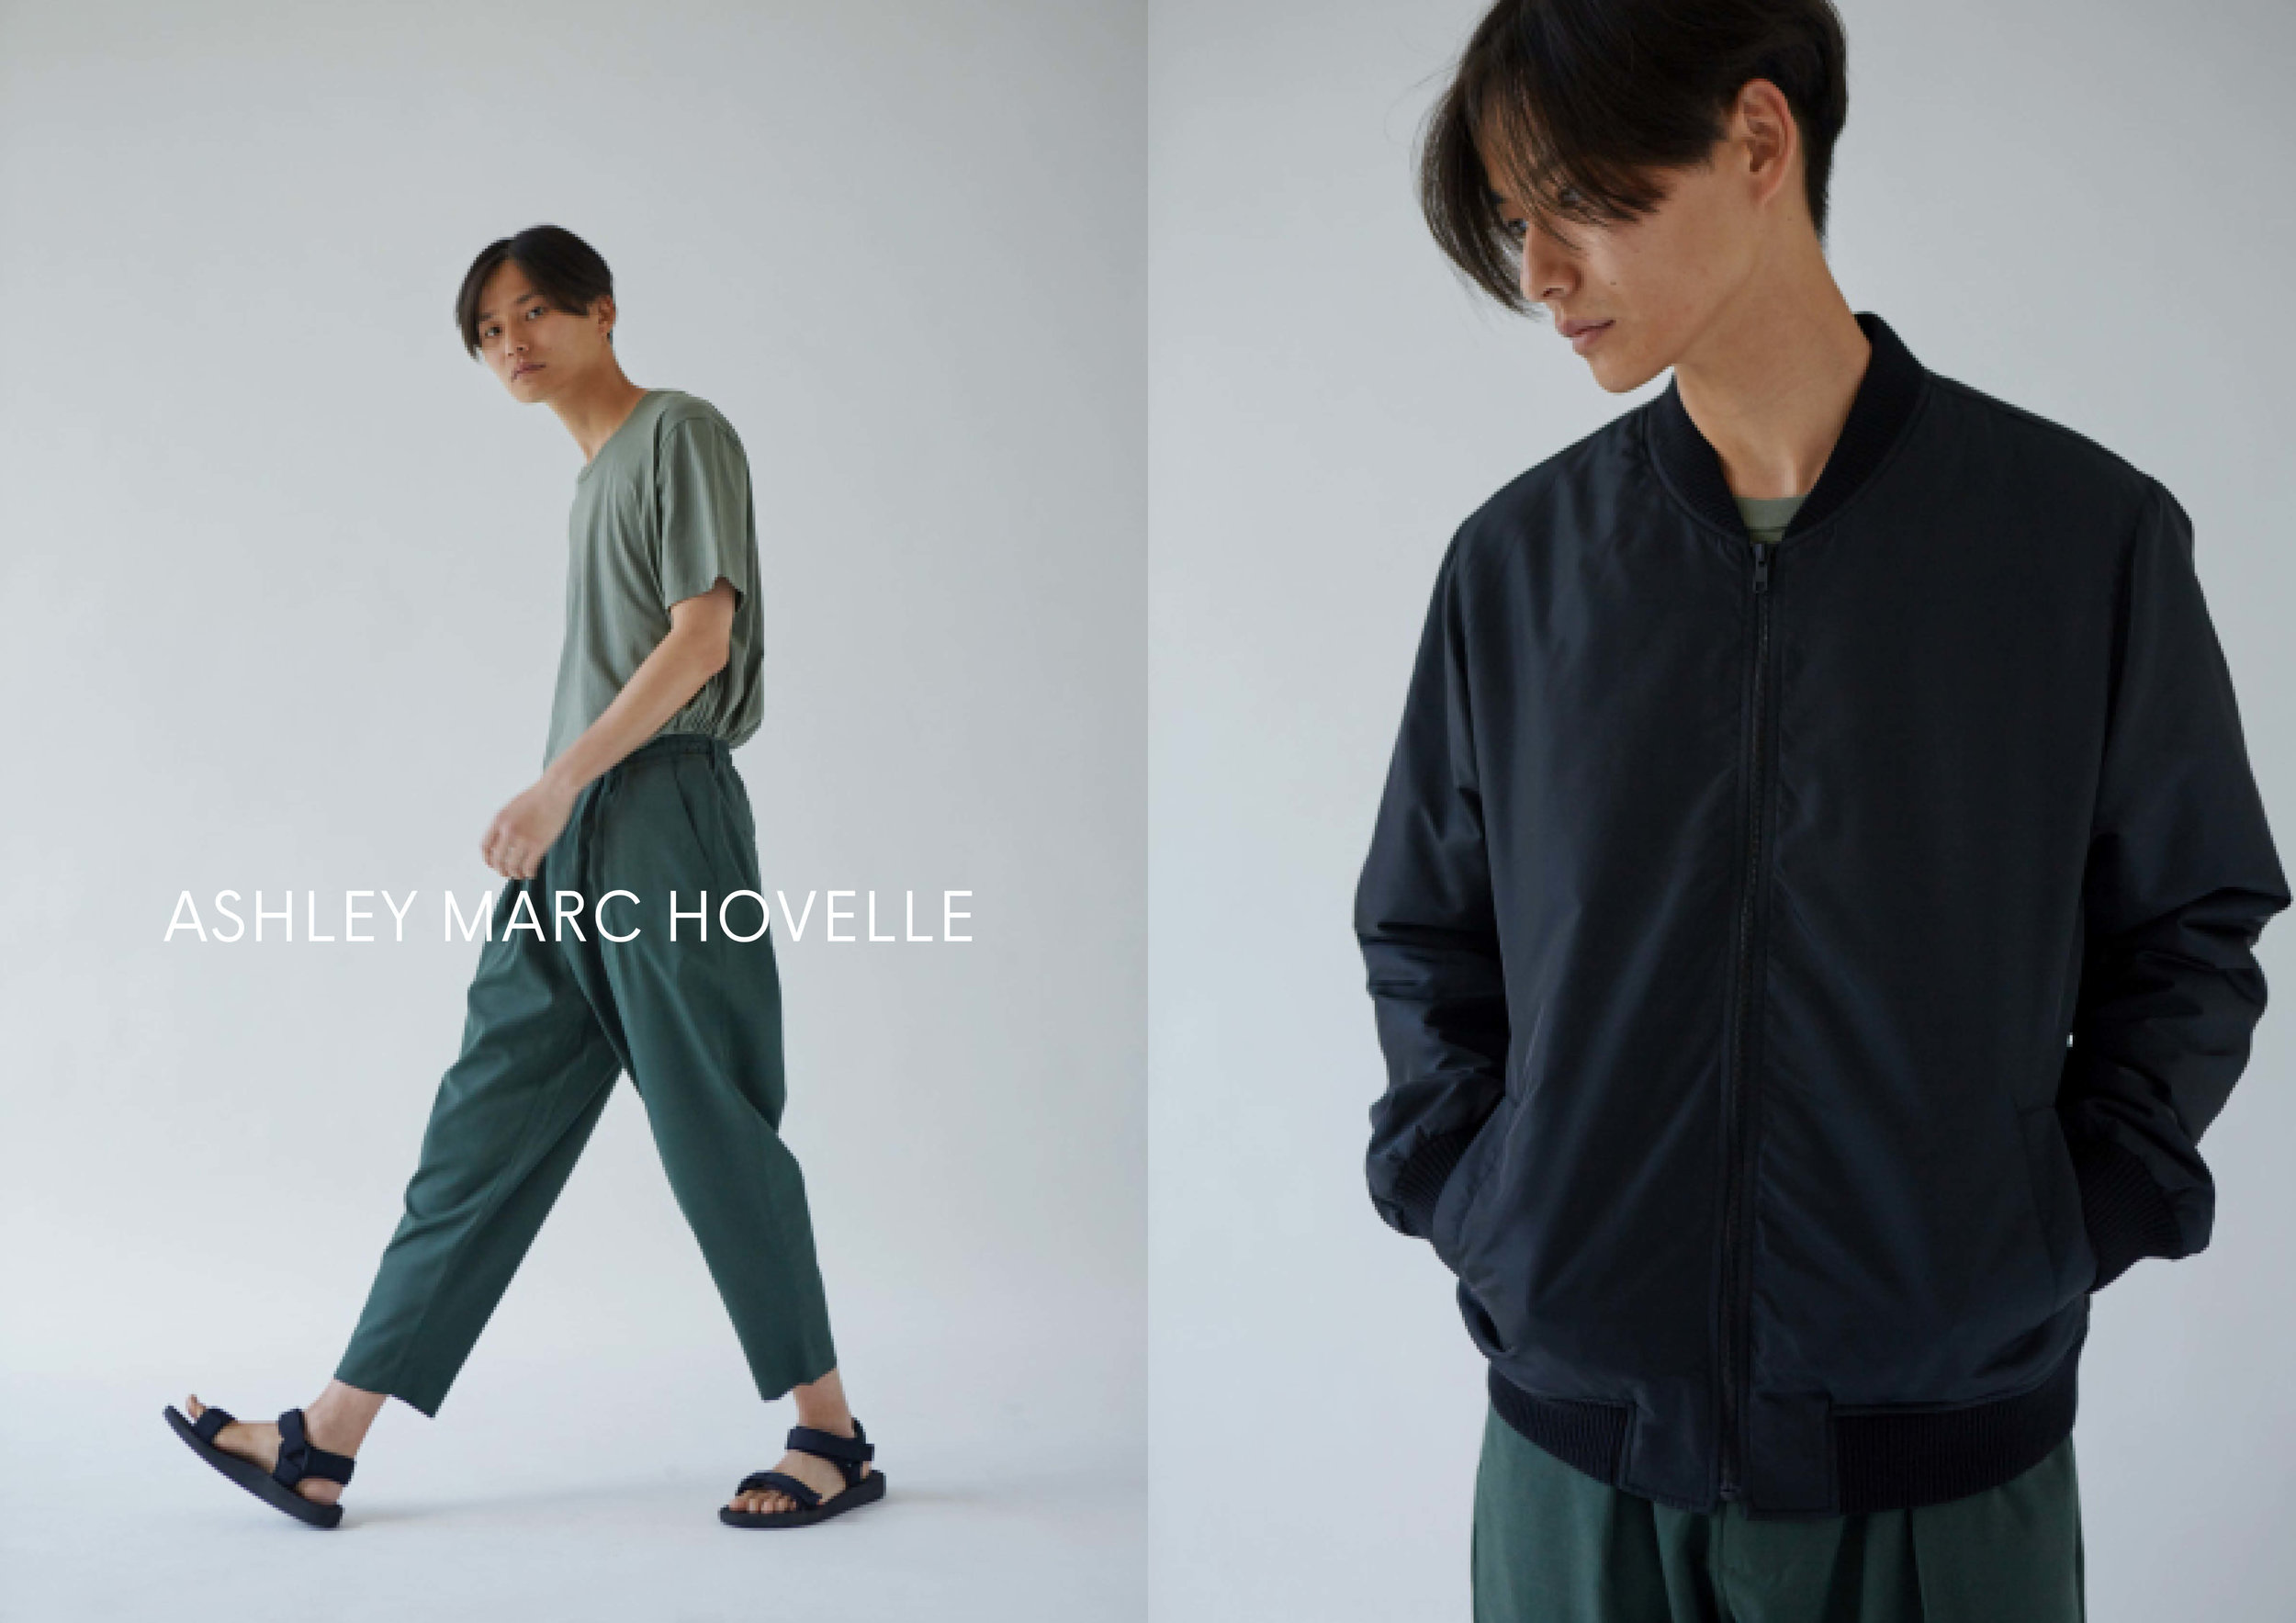 Ashley Marc Hovelle SS19 Lookbook final sml20.jpg